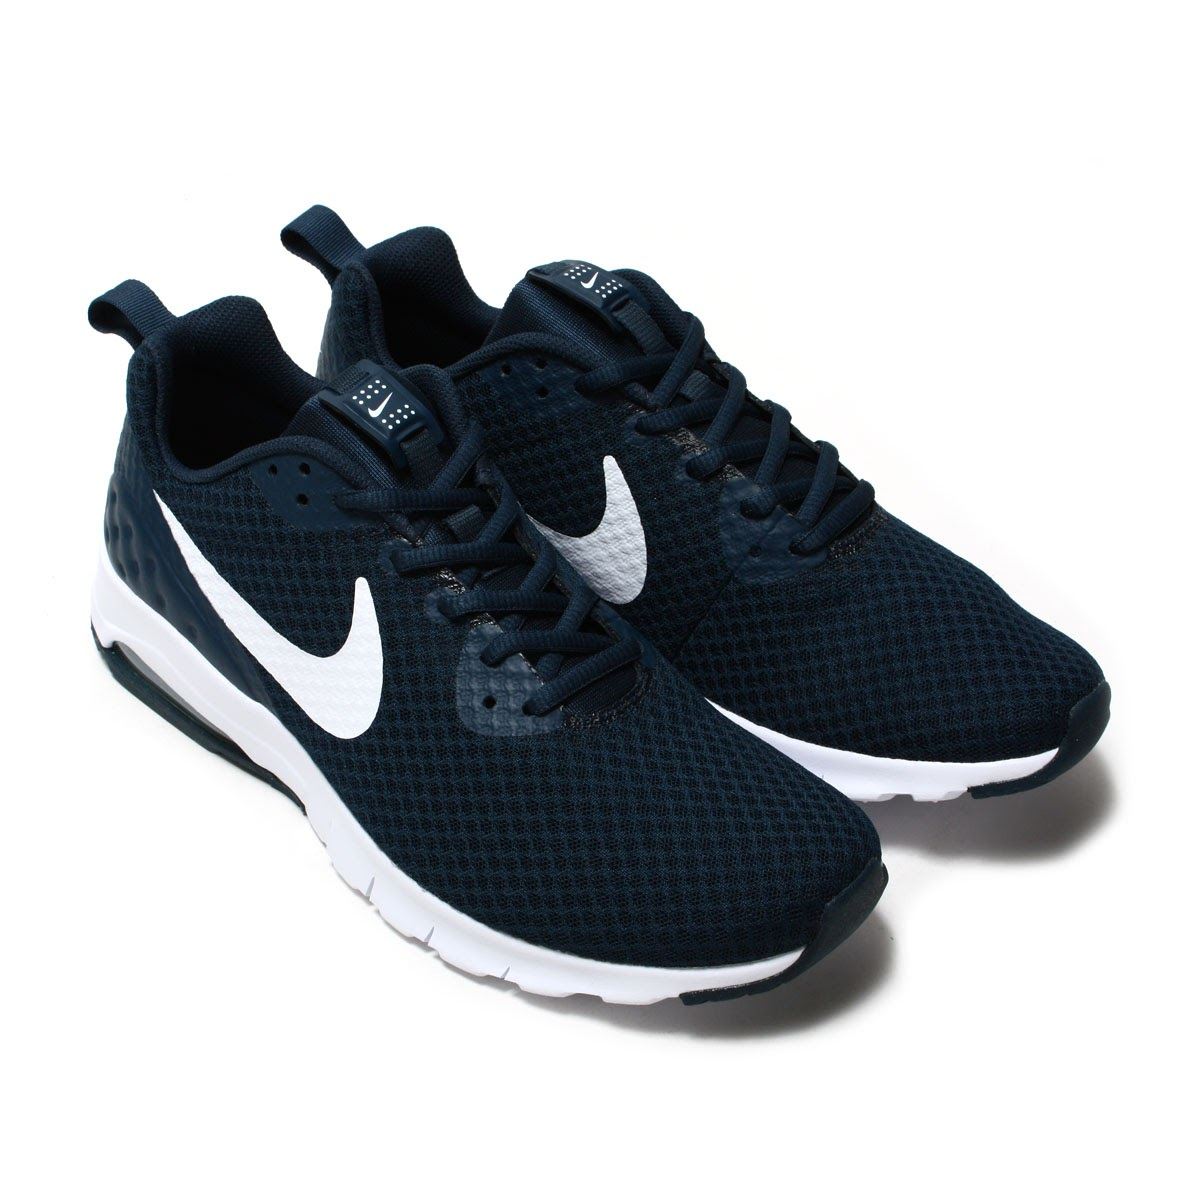 online store 9687e 1ce4b The AIR MAX shoes which inspire made a retro.